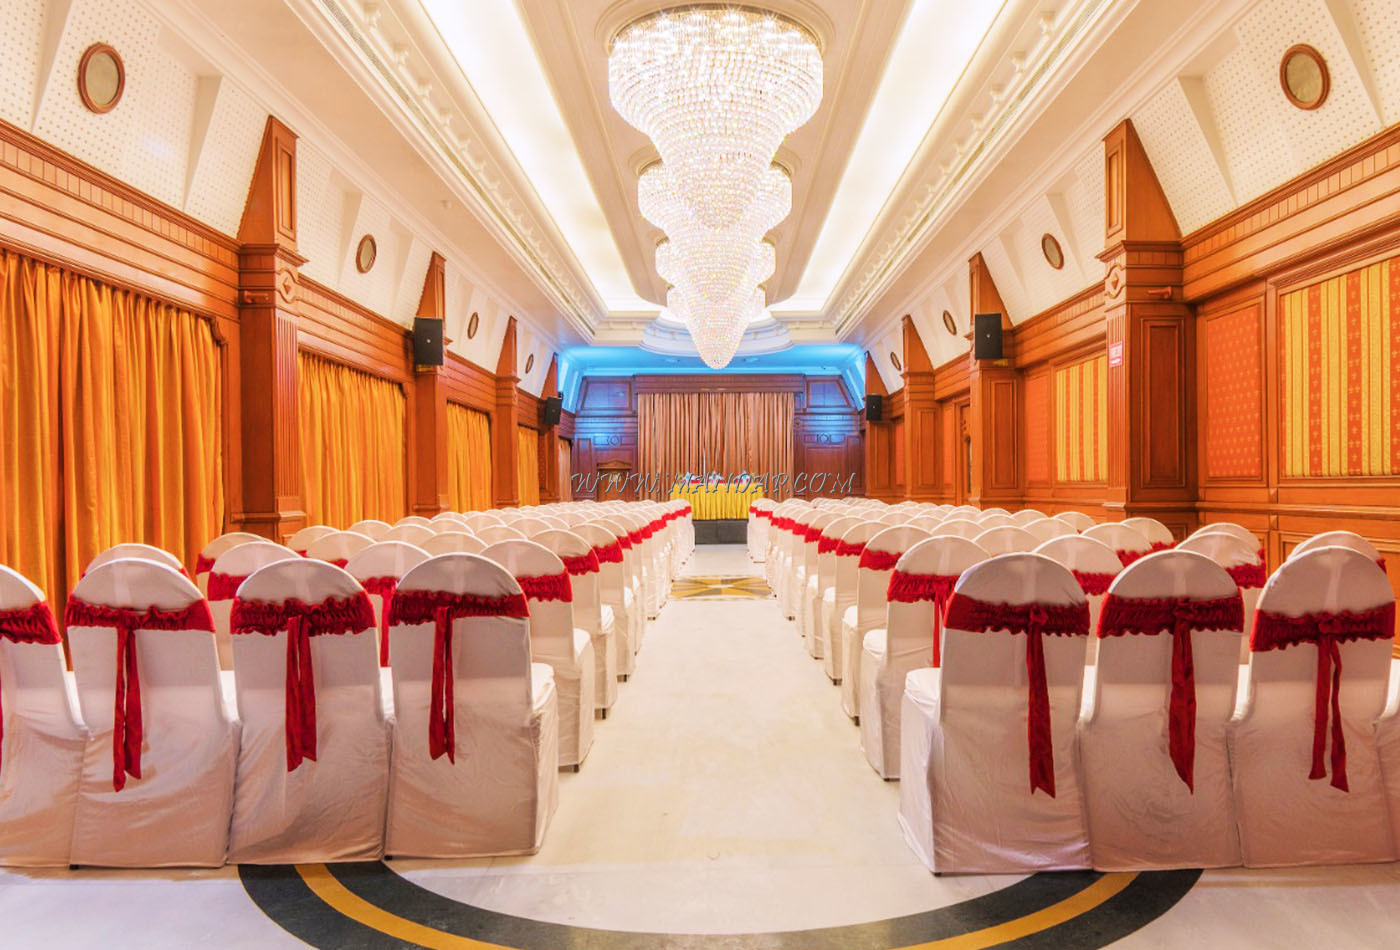 Find the availability of the Hotel Annamalai Prince Court Banquet Hall (A/C) in Saram, Pondicherry and avail special offers